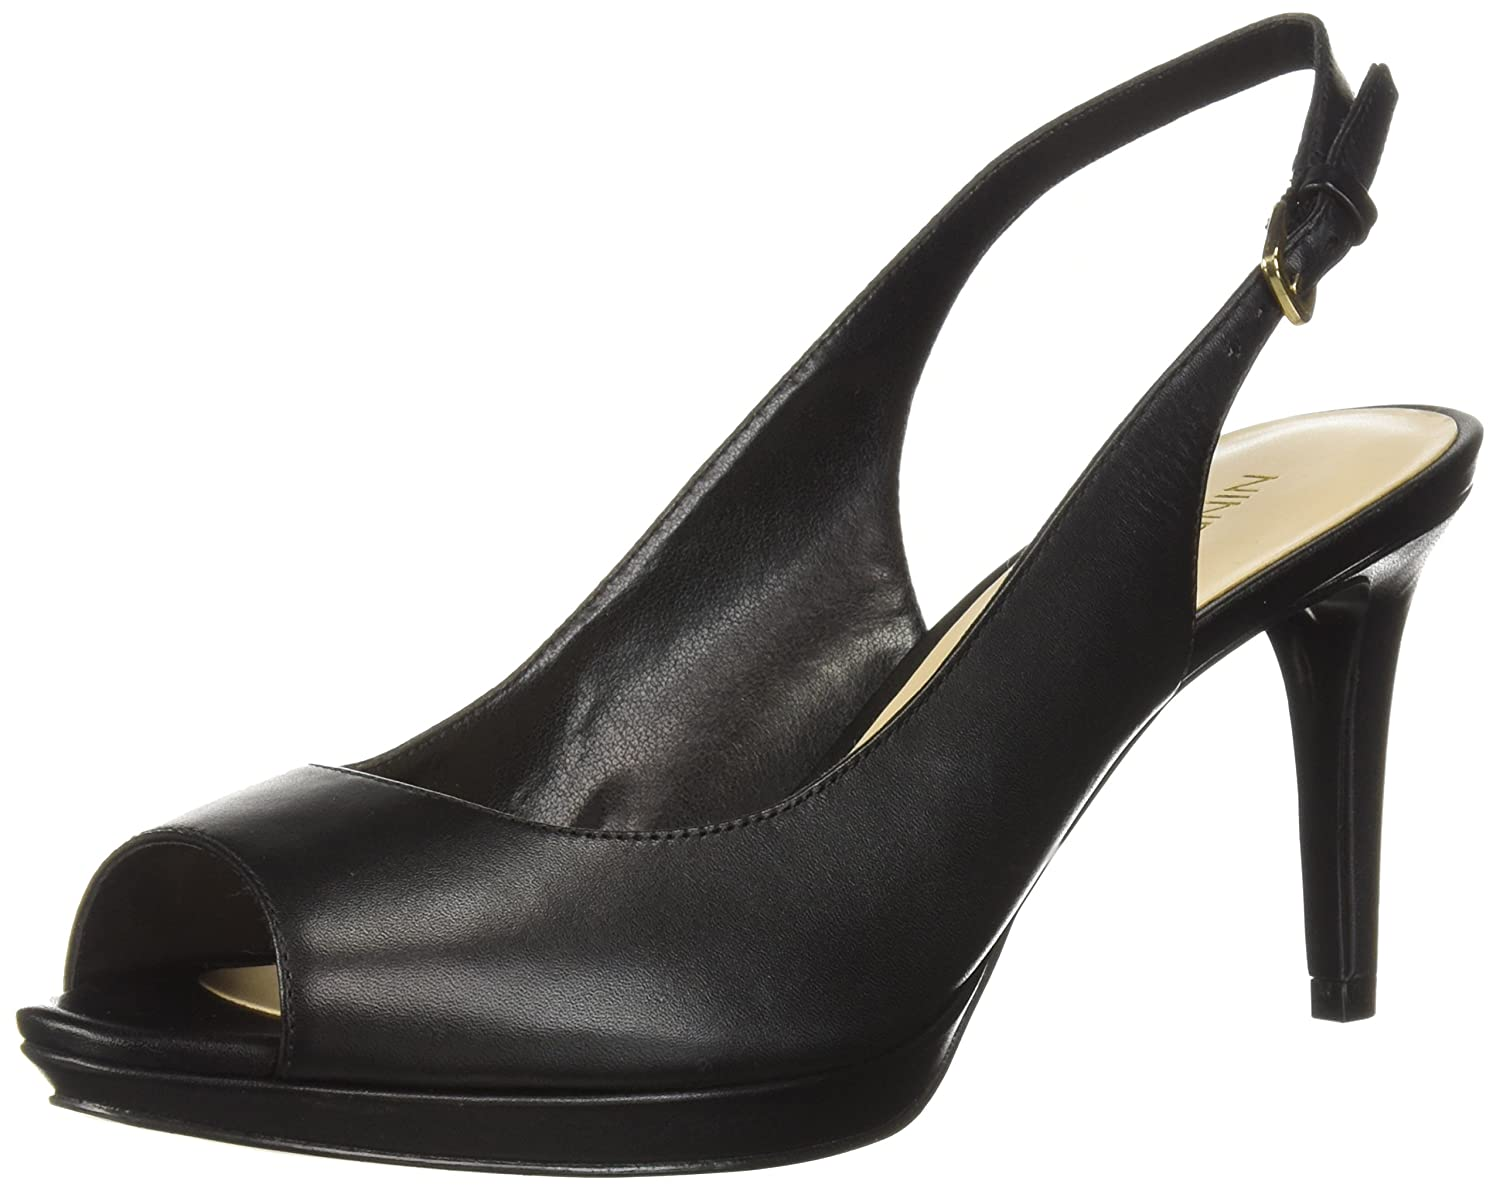 Nine West Women's Gabrielle Pump B07227D3XY 6.5 B(M) US|Black Leather